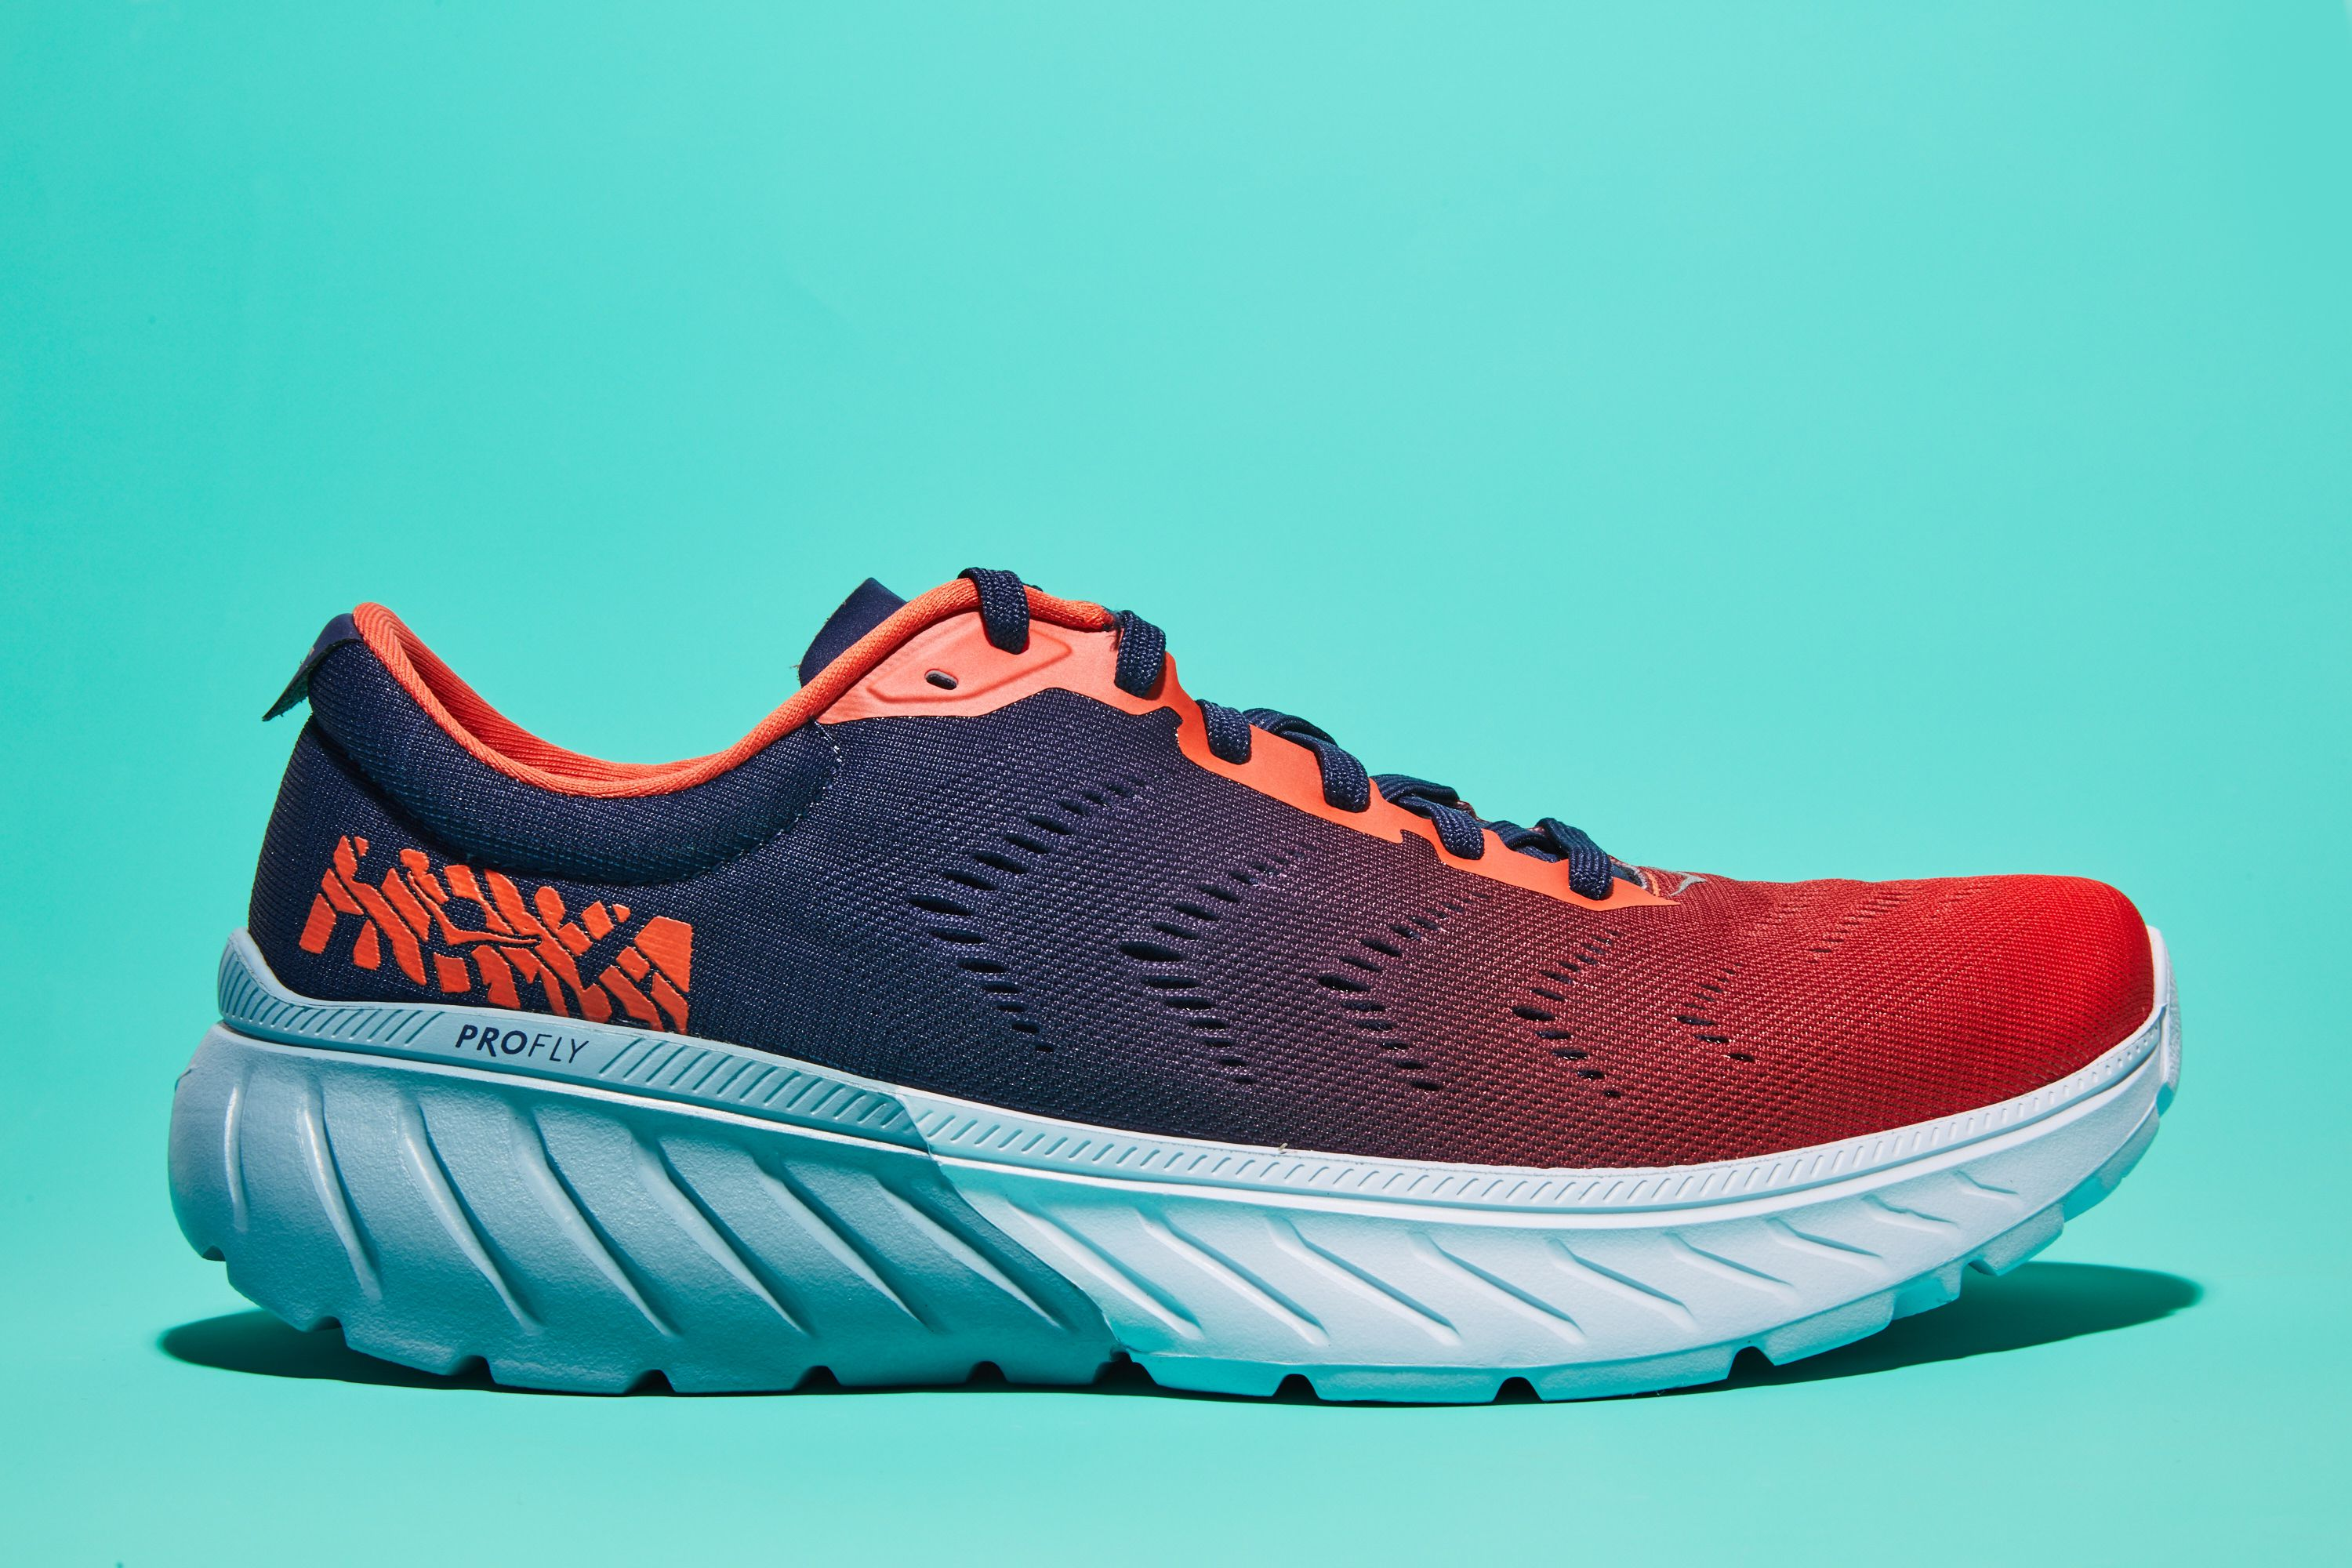 separation shoes ee118 4ce25 Hoka Running Shoes 2019   14 Best Hoka One One Shoes